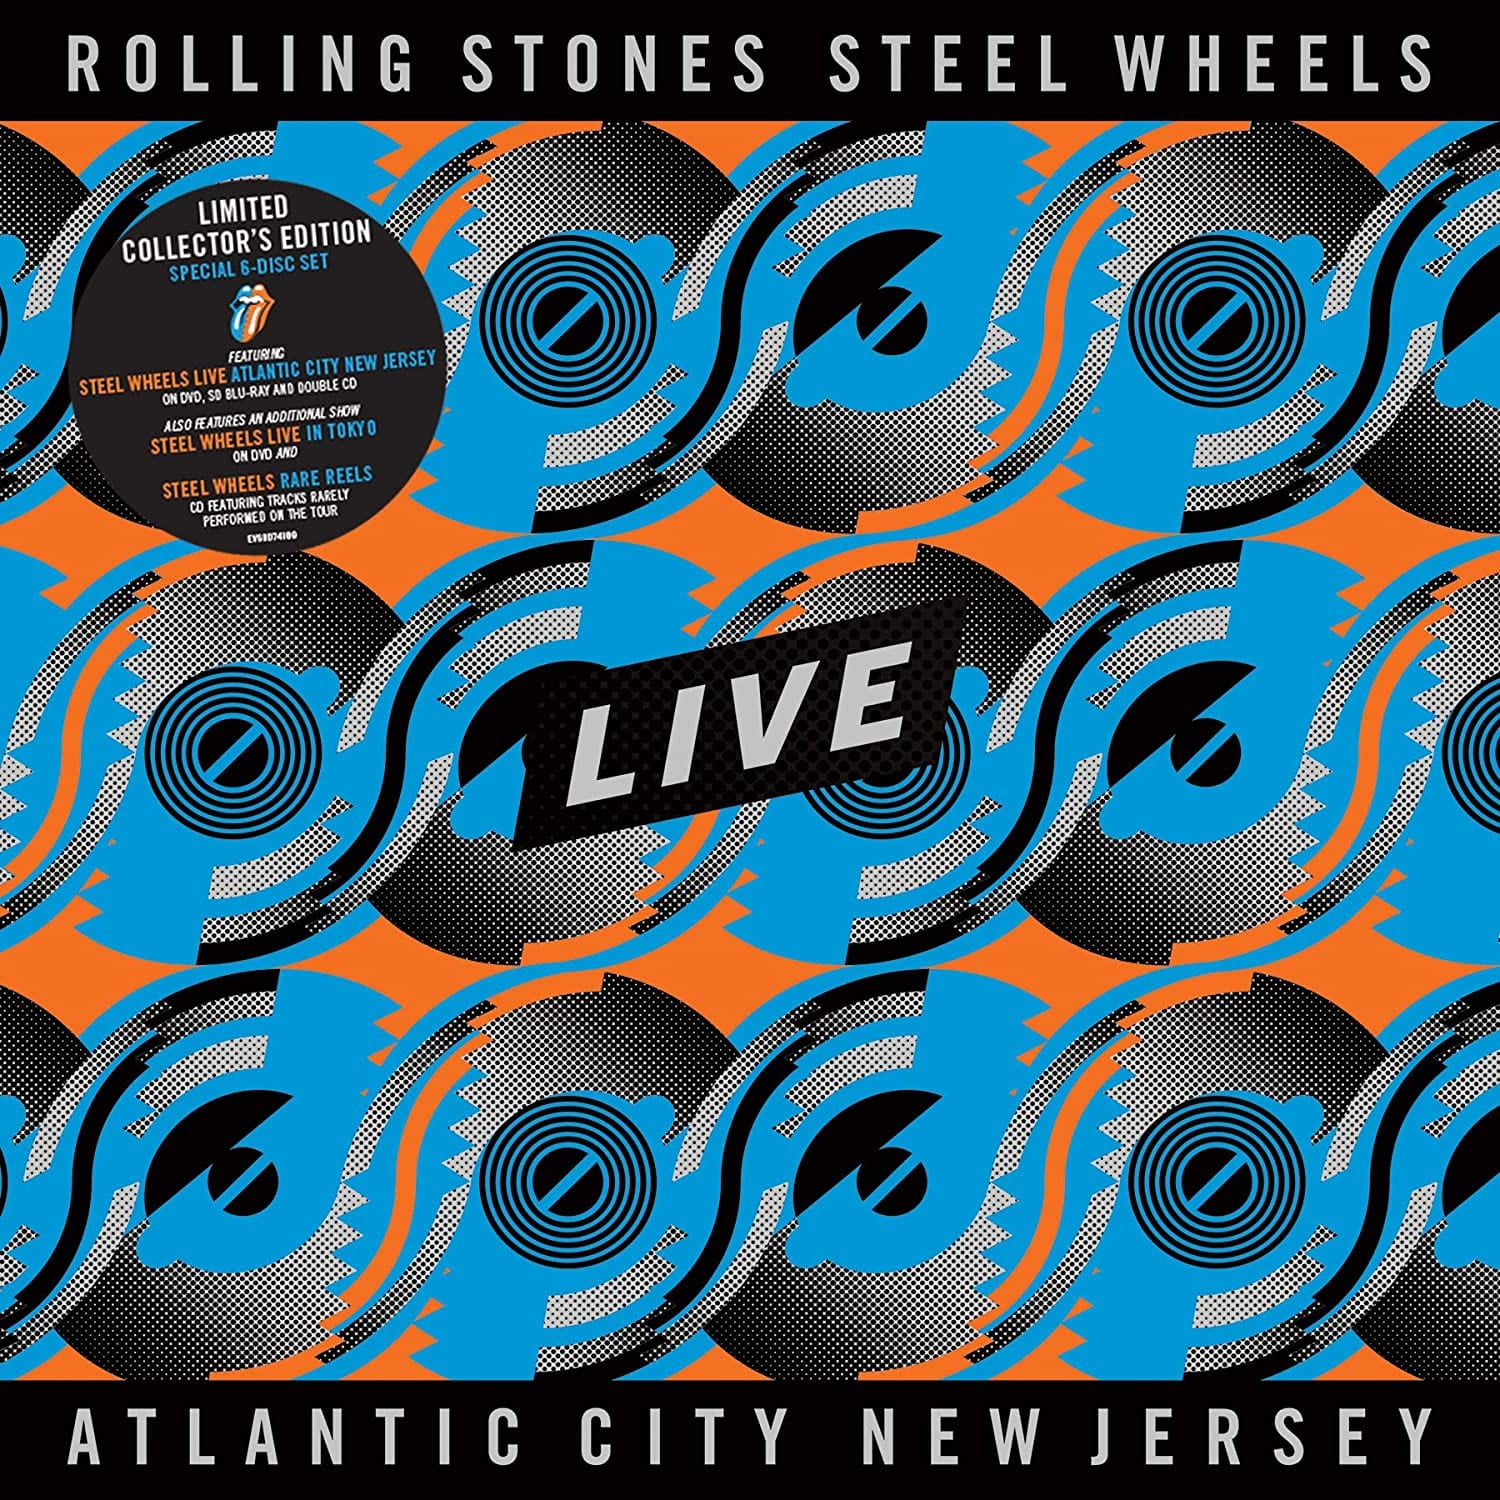 Rolling Stones, The - Steel Wheels Live: Live From Atlantic City, NJ, 1989 [3CD+2DVD+BluRay] (limited) - Urban Vinyl | Records, Headphones, and more.